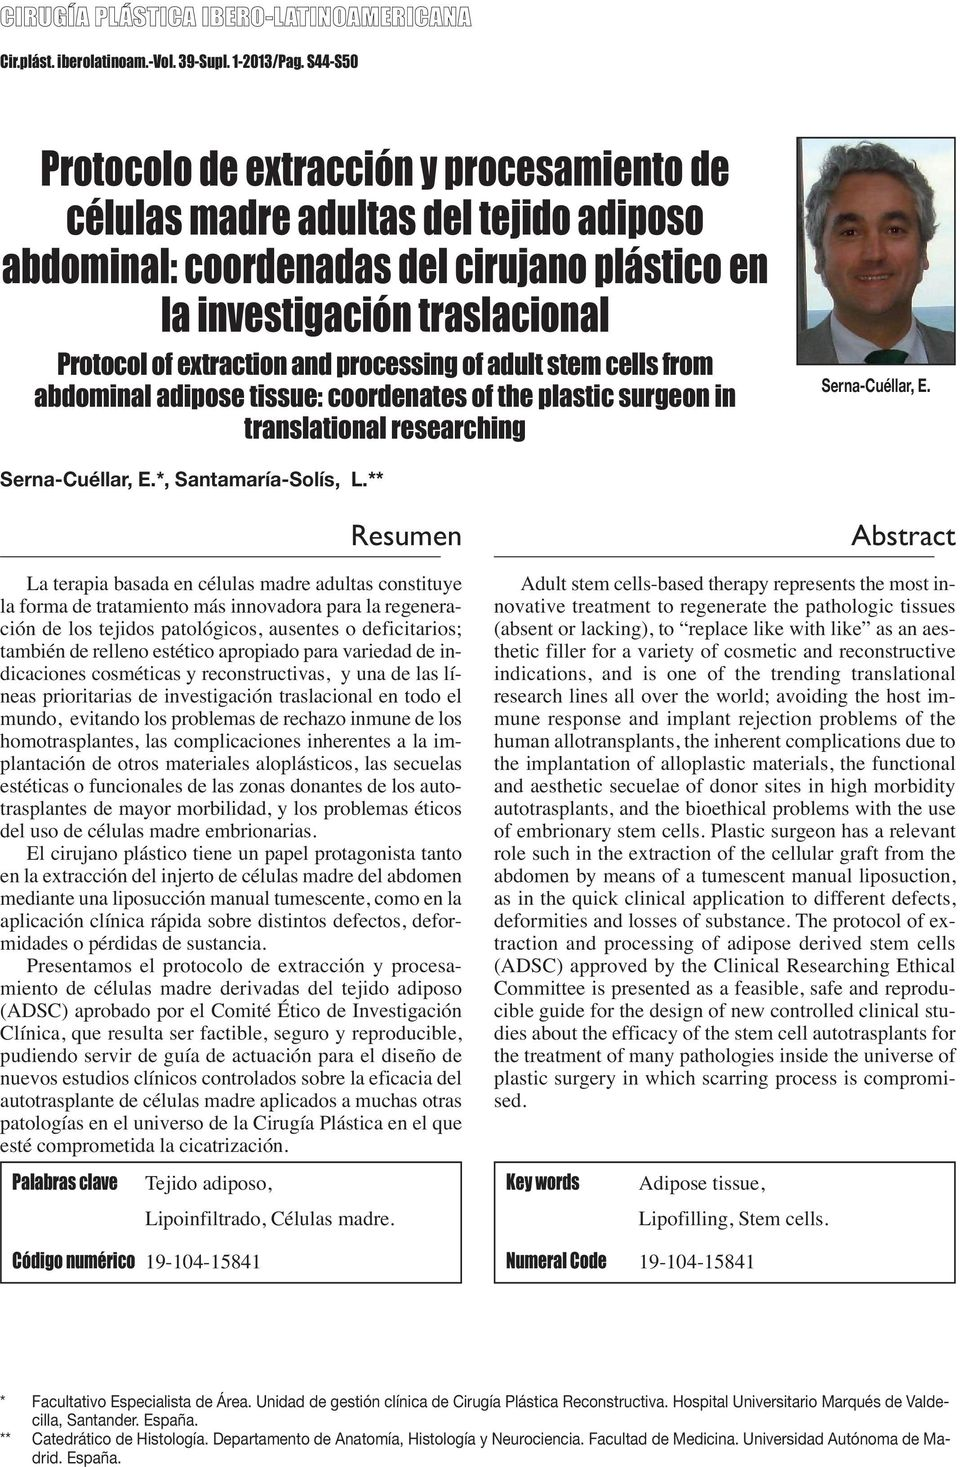 processing of adult stem cells from abdominal adipose tissue: coordenates of the plastic surgeon in translational researching Serna-Cuéllar, E. Serna-Cuéllar, E.*, Santamaría-Solís, L.